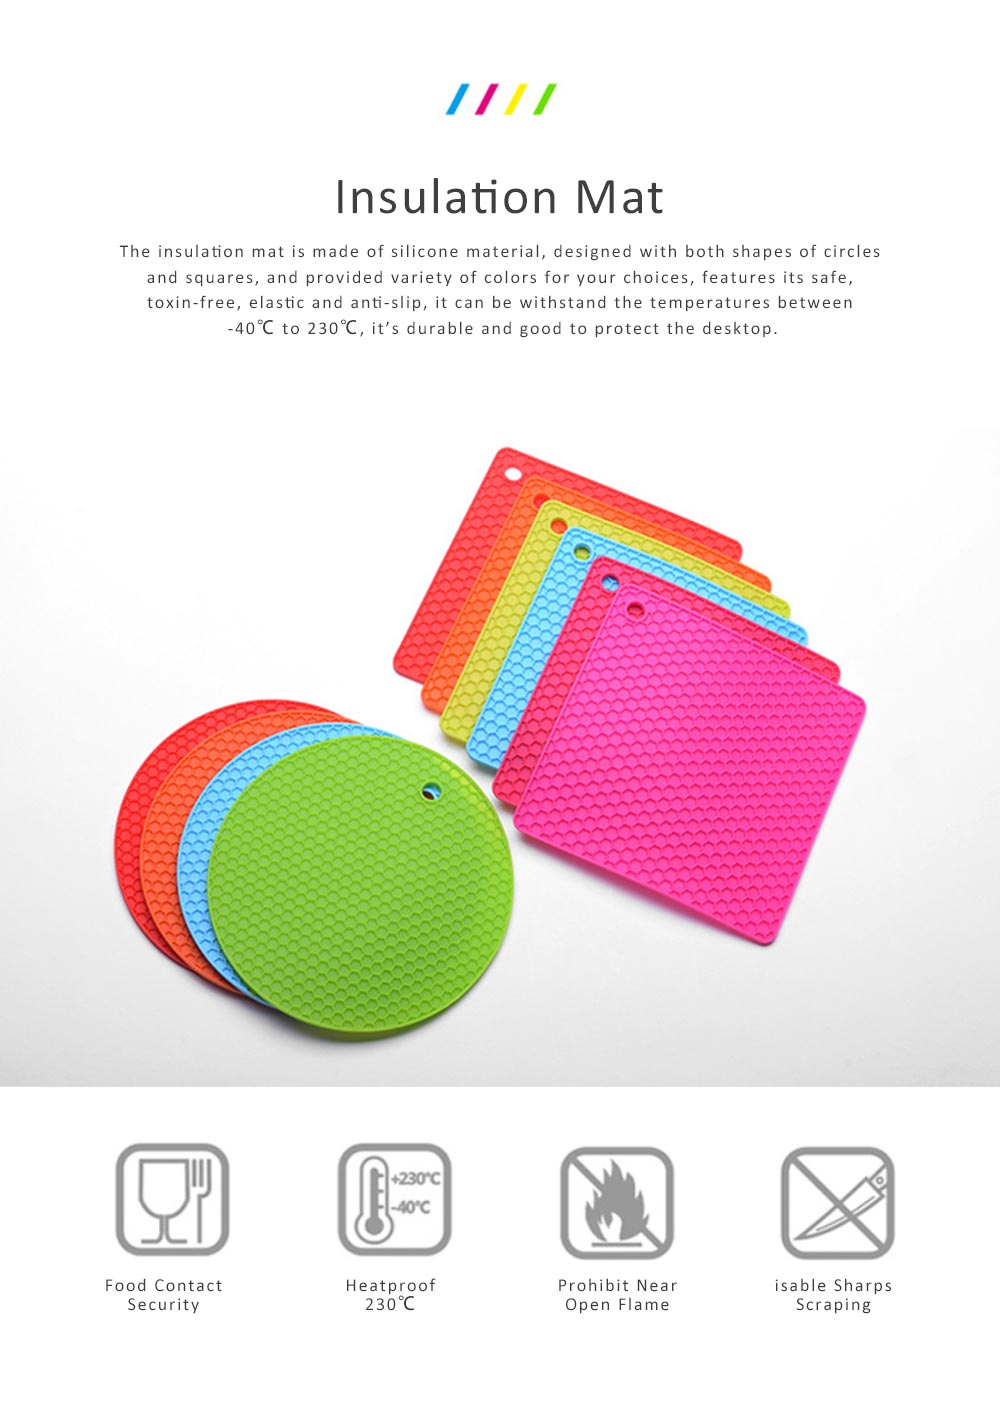 Insulation Mat Honeycomb Silicone Material Elastic for Hot Vessels Pad Anti-slip Table Holder 0